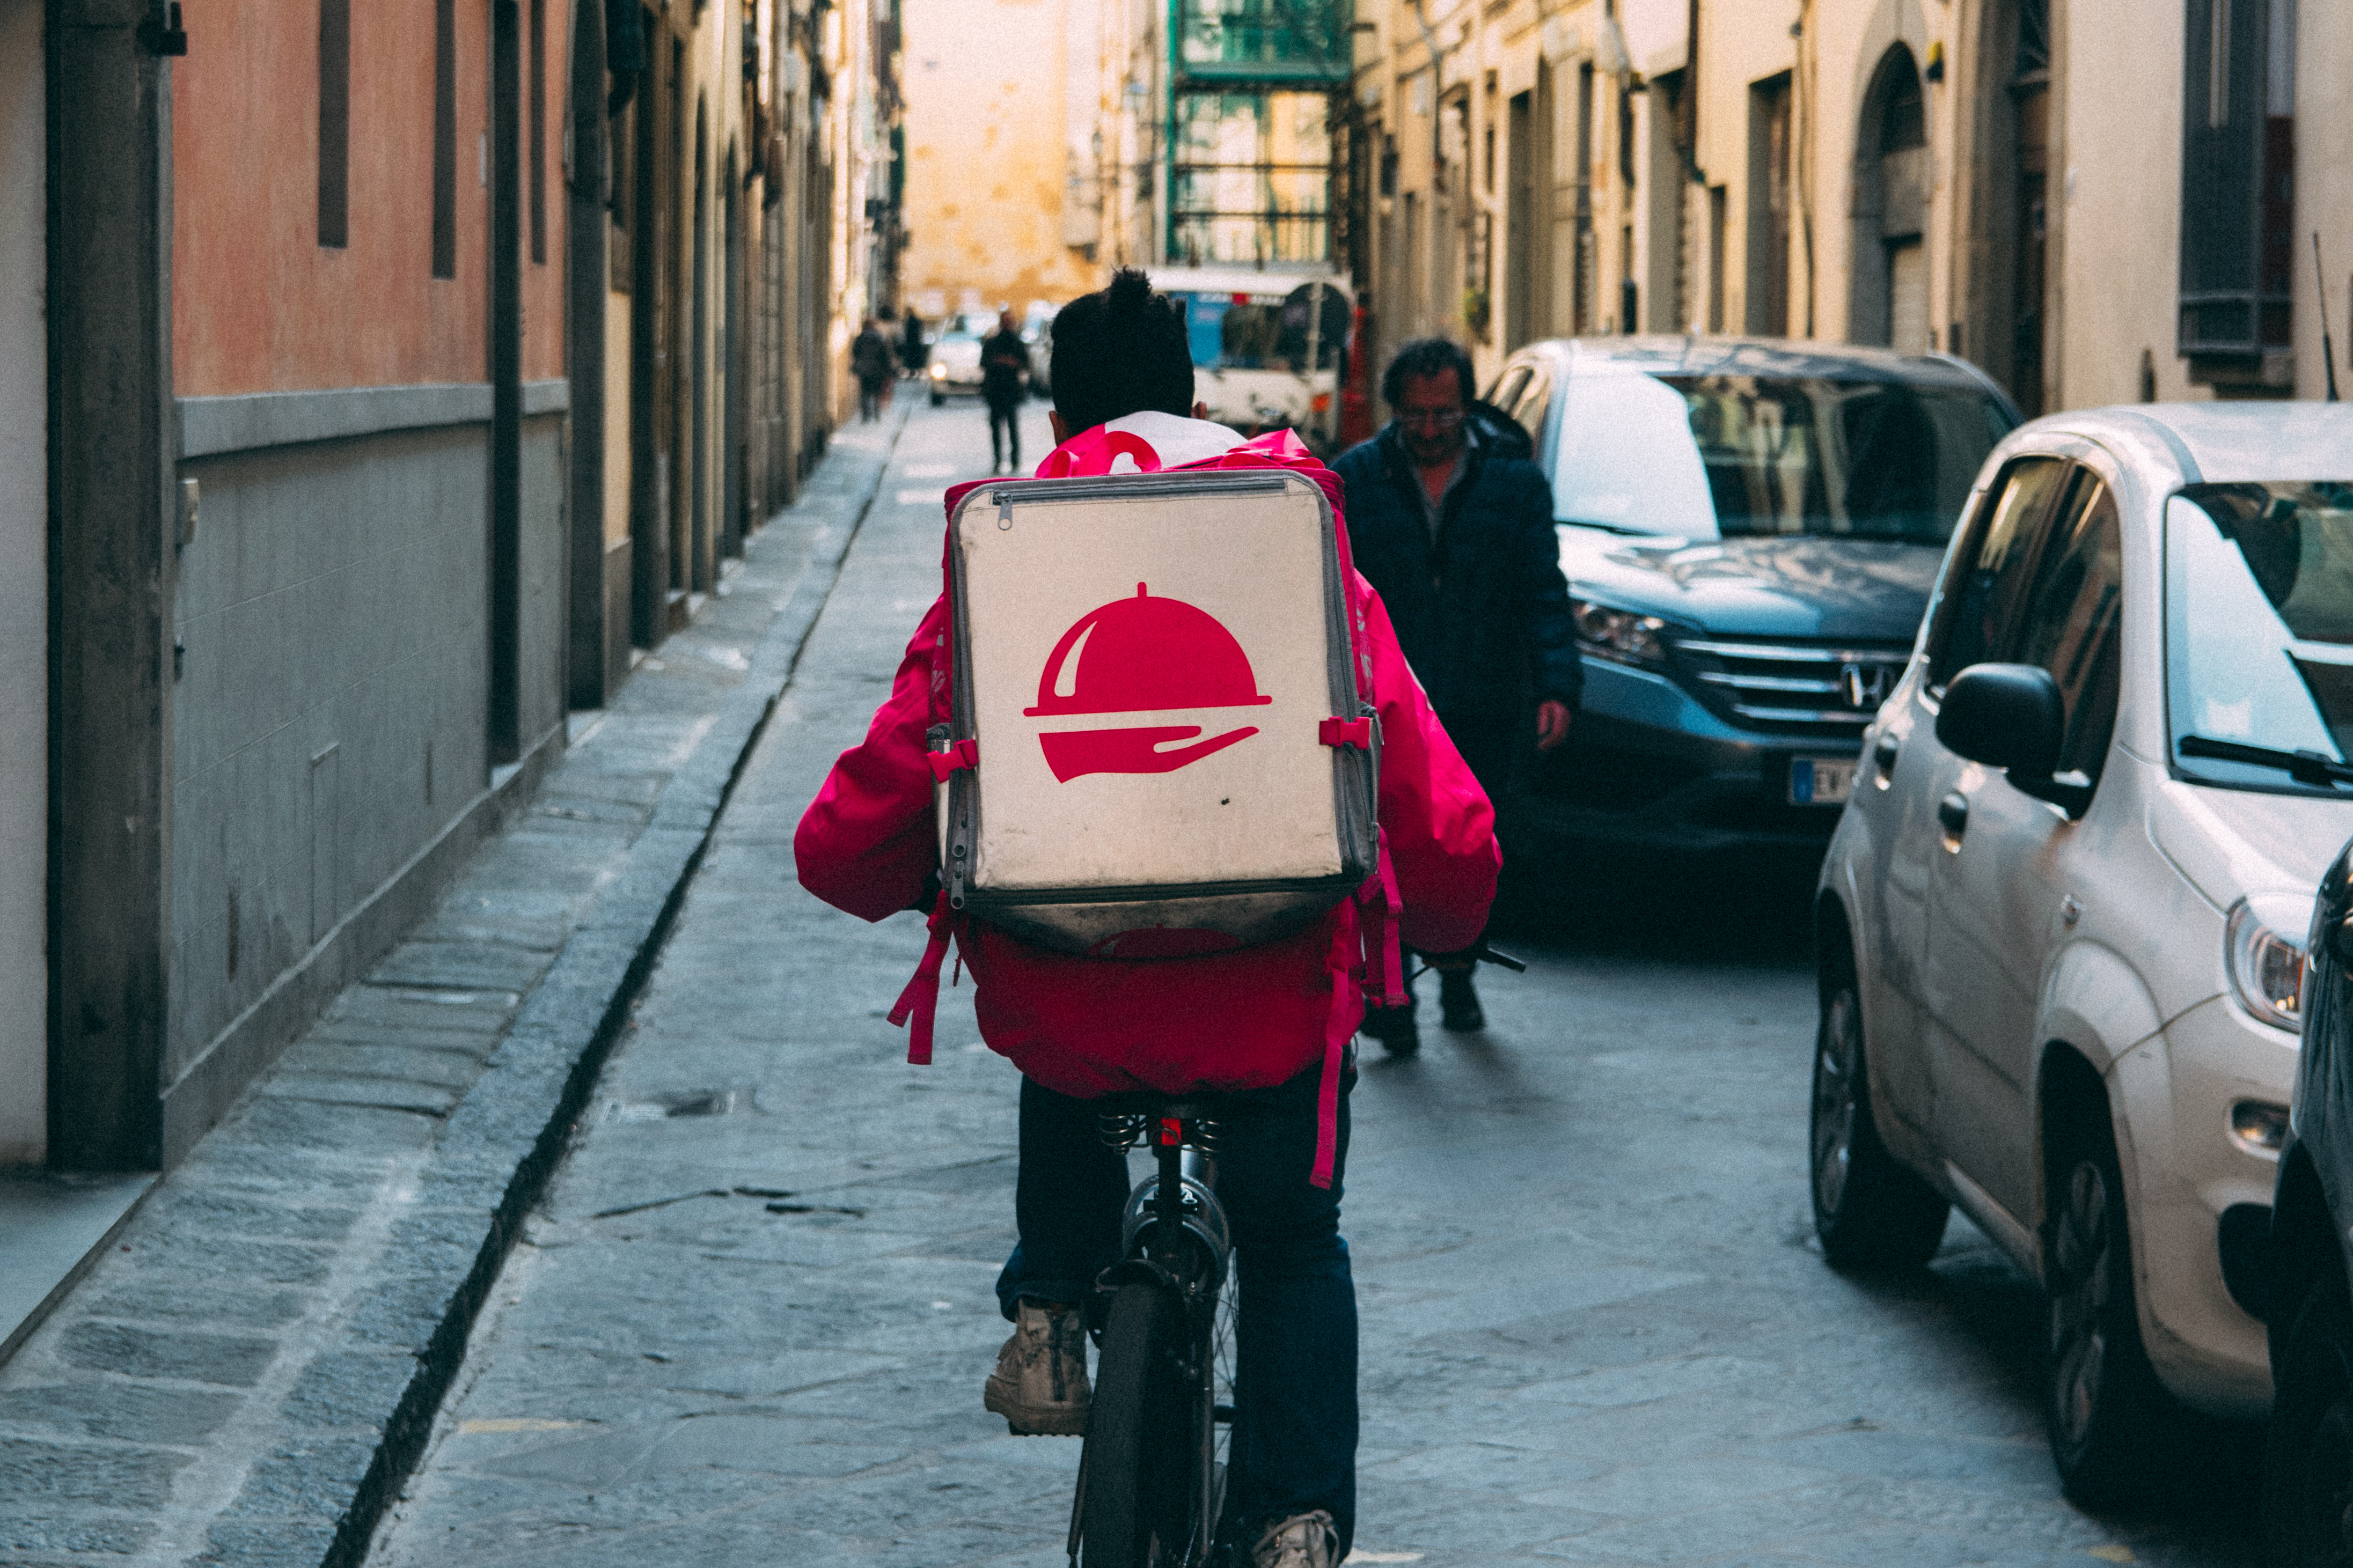 Postmates review: On-demand food delivery, but at a cost